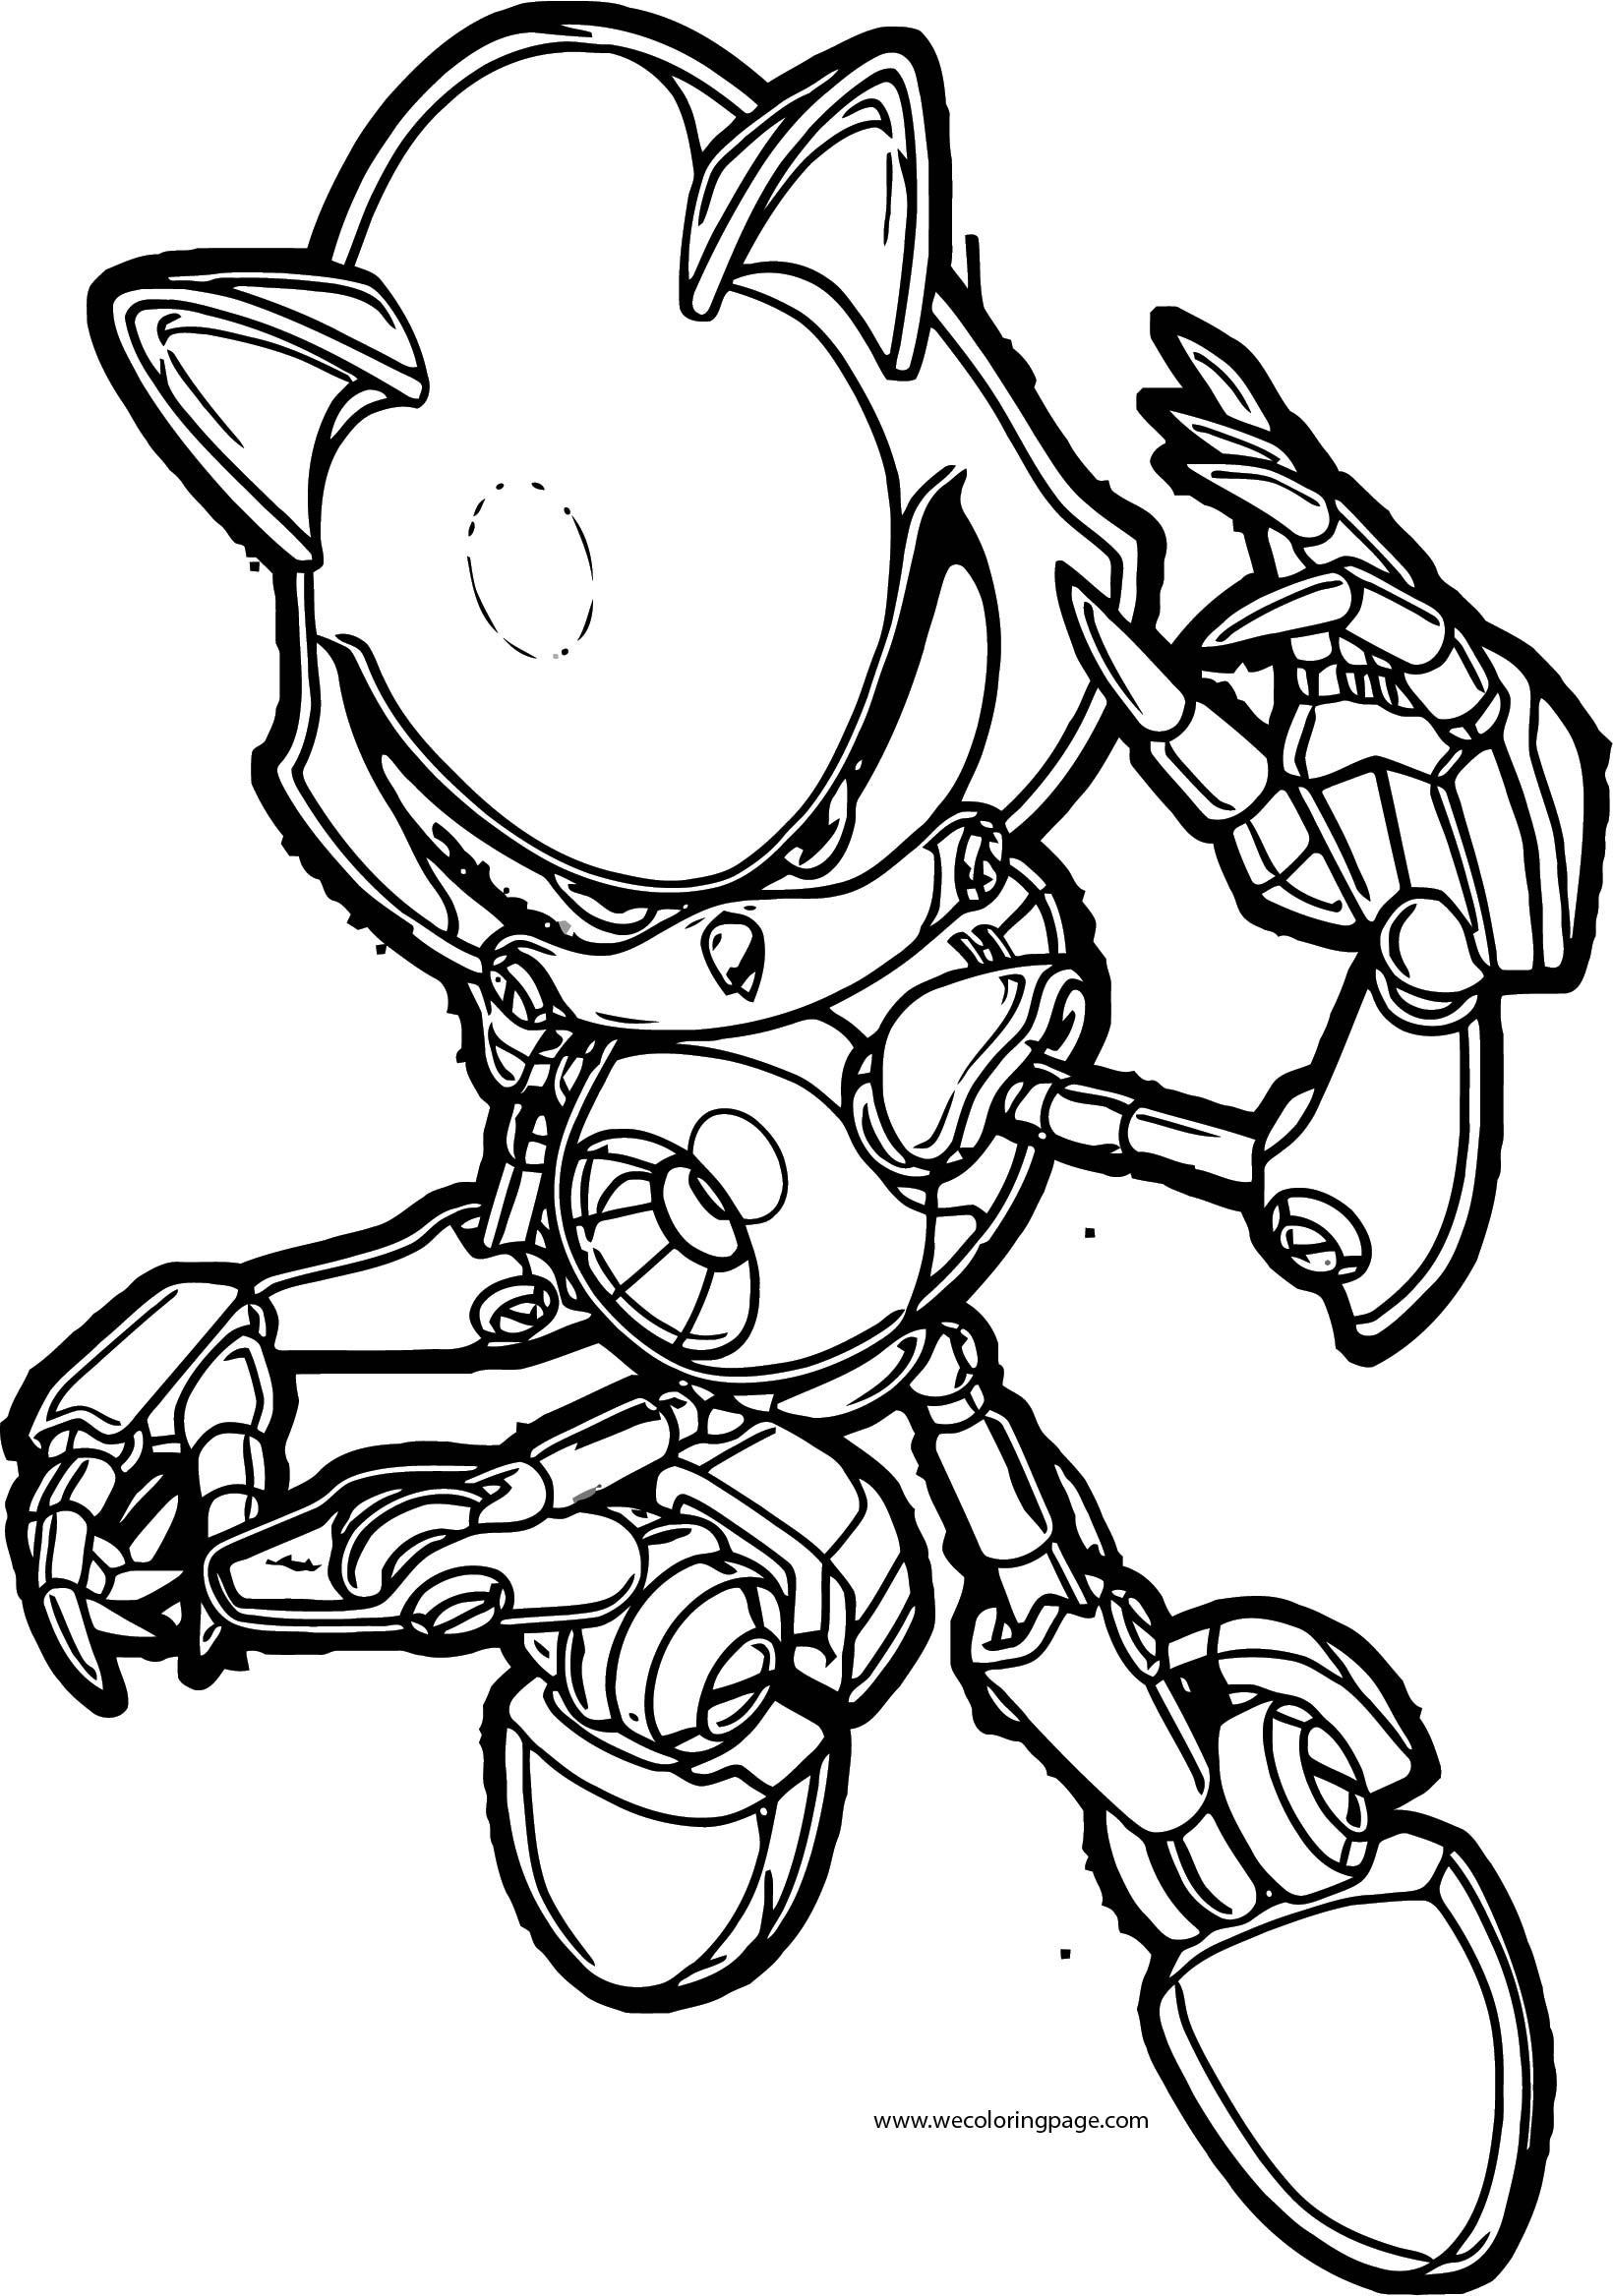 Robot Sonic The Hedgehog Coloring Page Wecoloringpage